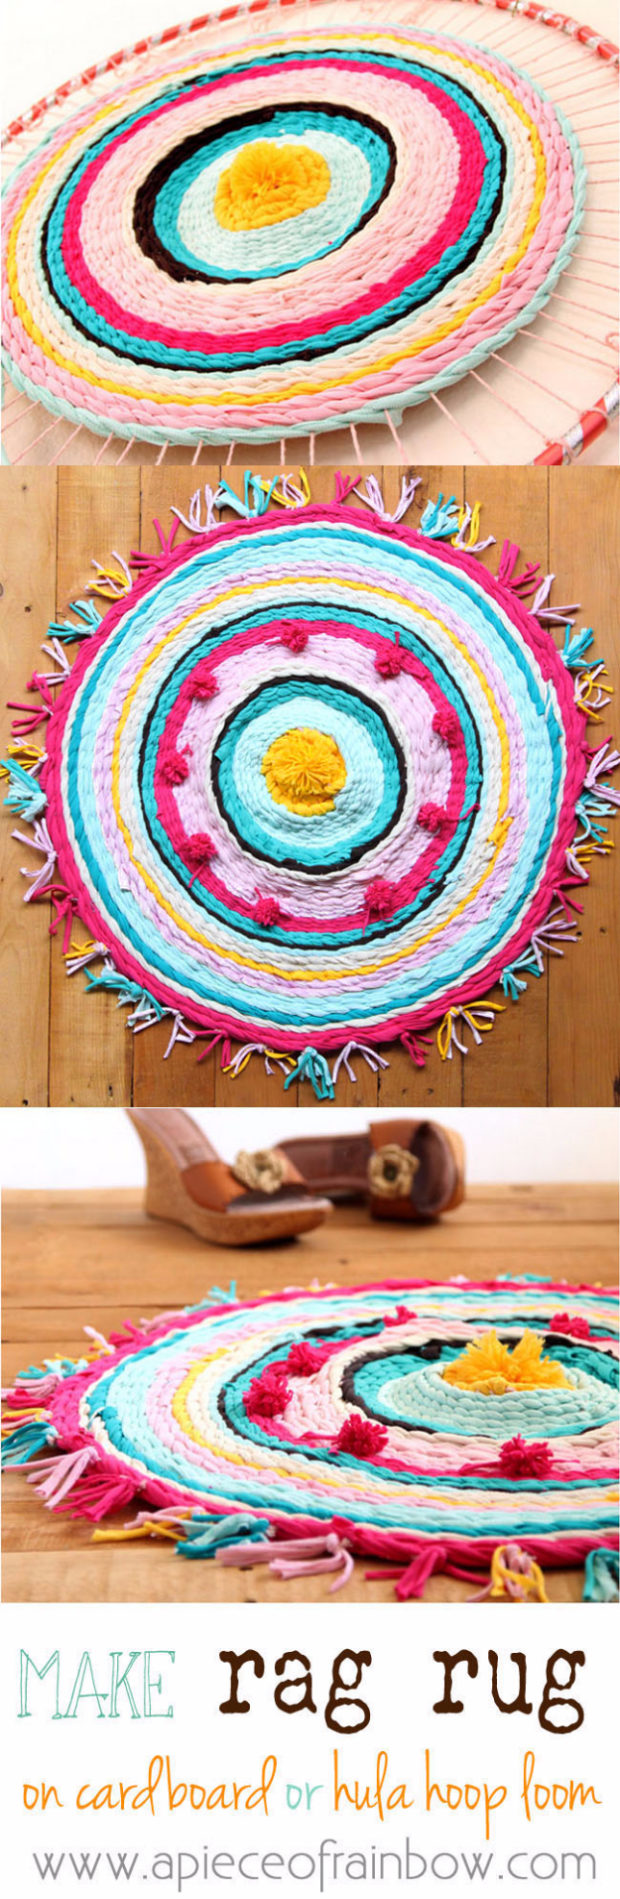 15 Chic DIY Rug Ideas You Can Make Right Away! (6)